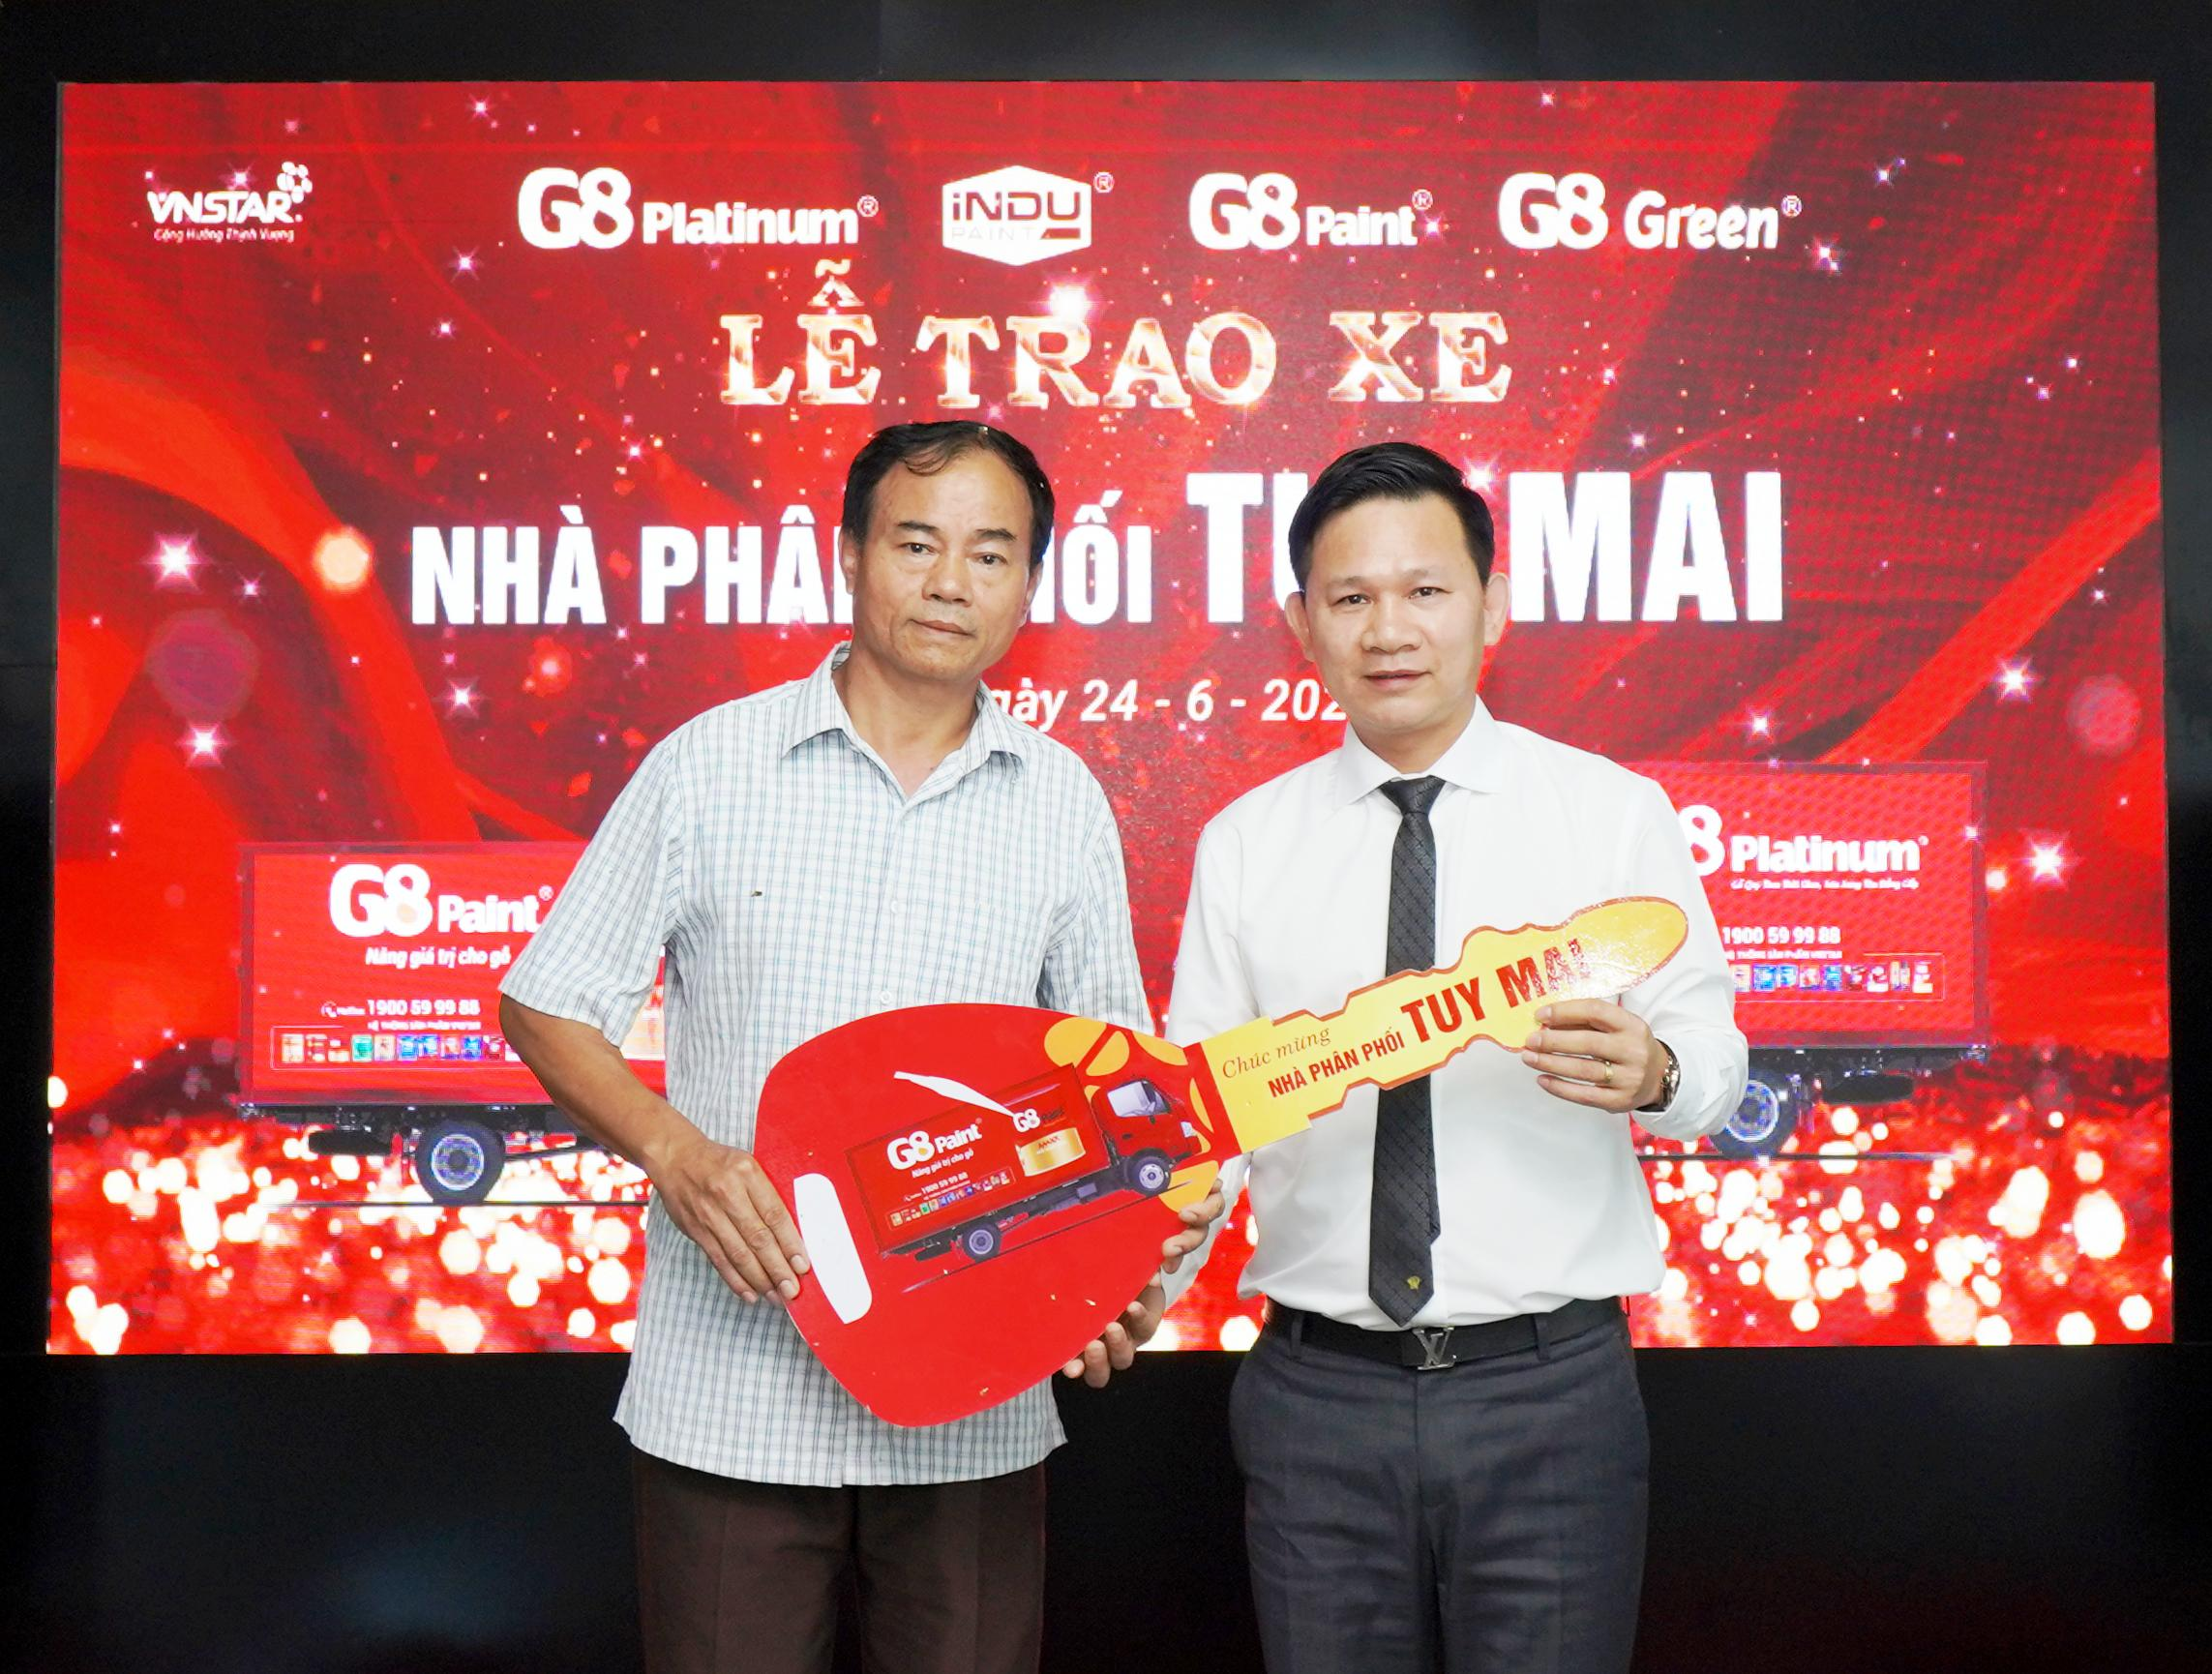 PRESENTING TRUCK TO TUY MAI DISTRIBUTOR-THE PRACTICAL AND MEANINGFUL GIFT